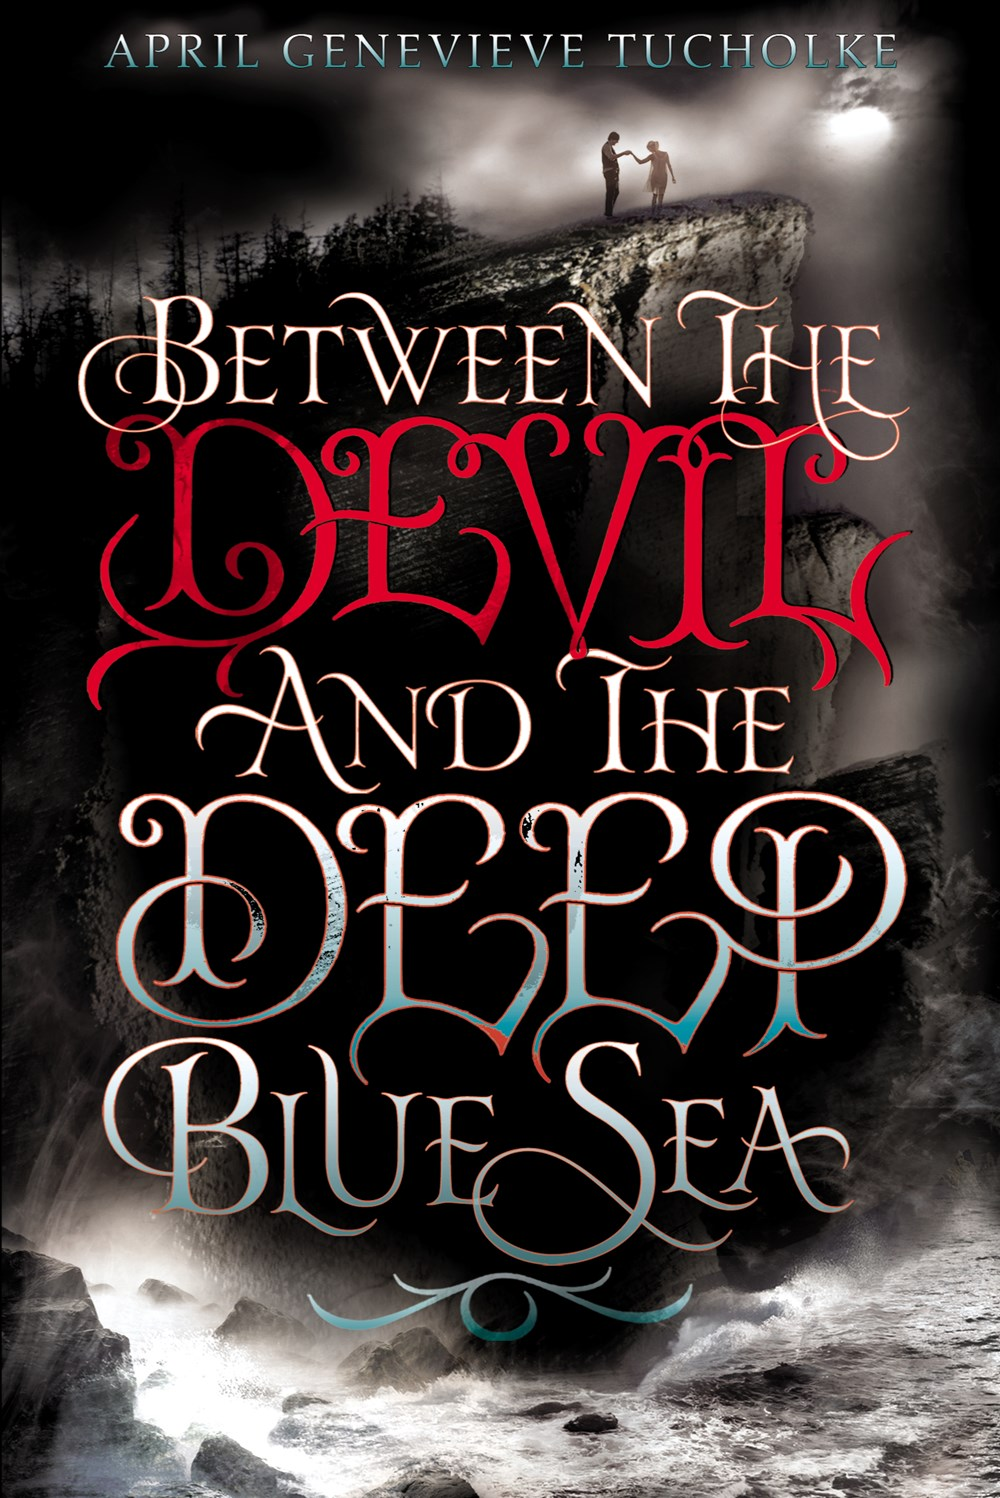 Between the Devil and the Deep Blue Sea by April Genevieve Tucholke Book Cover.jpg